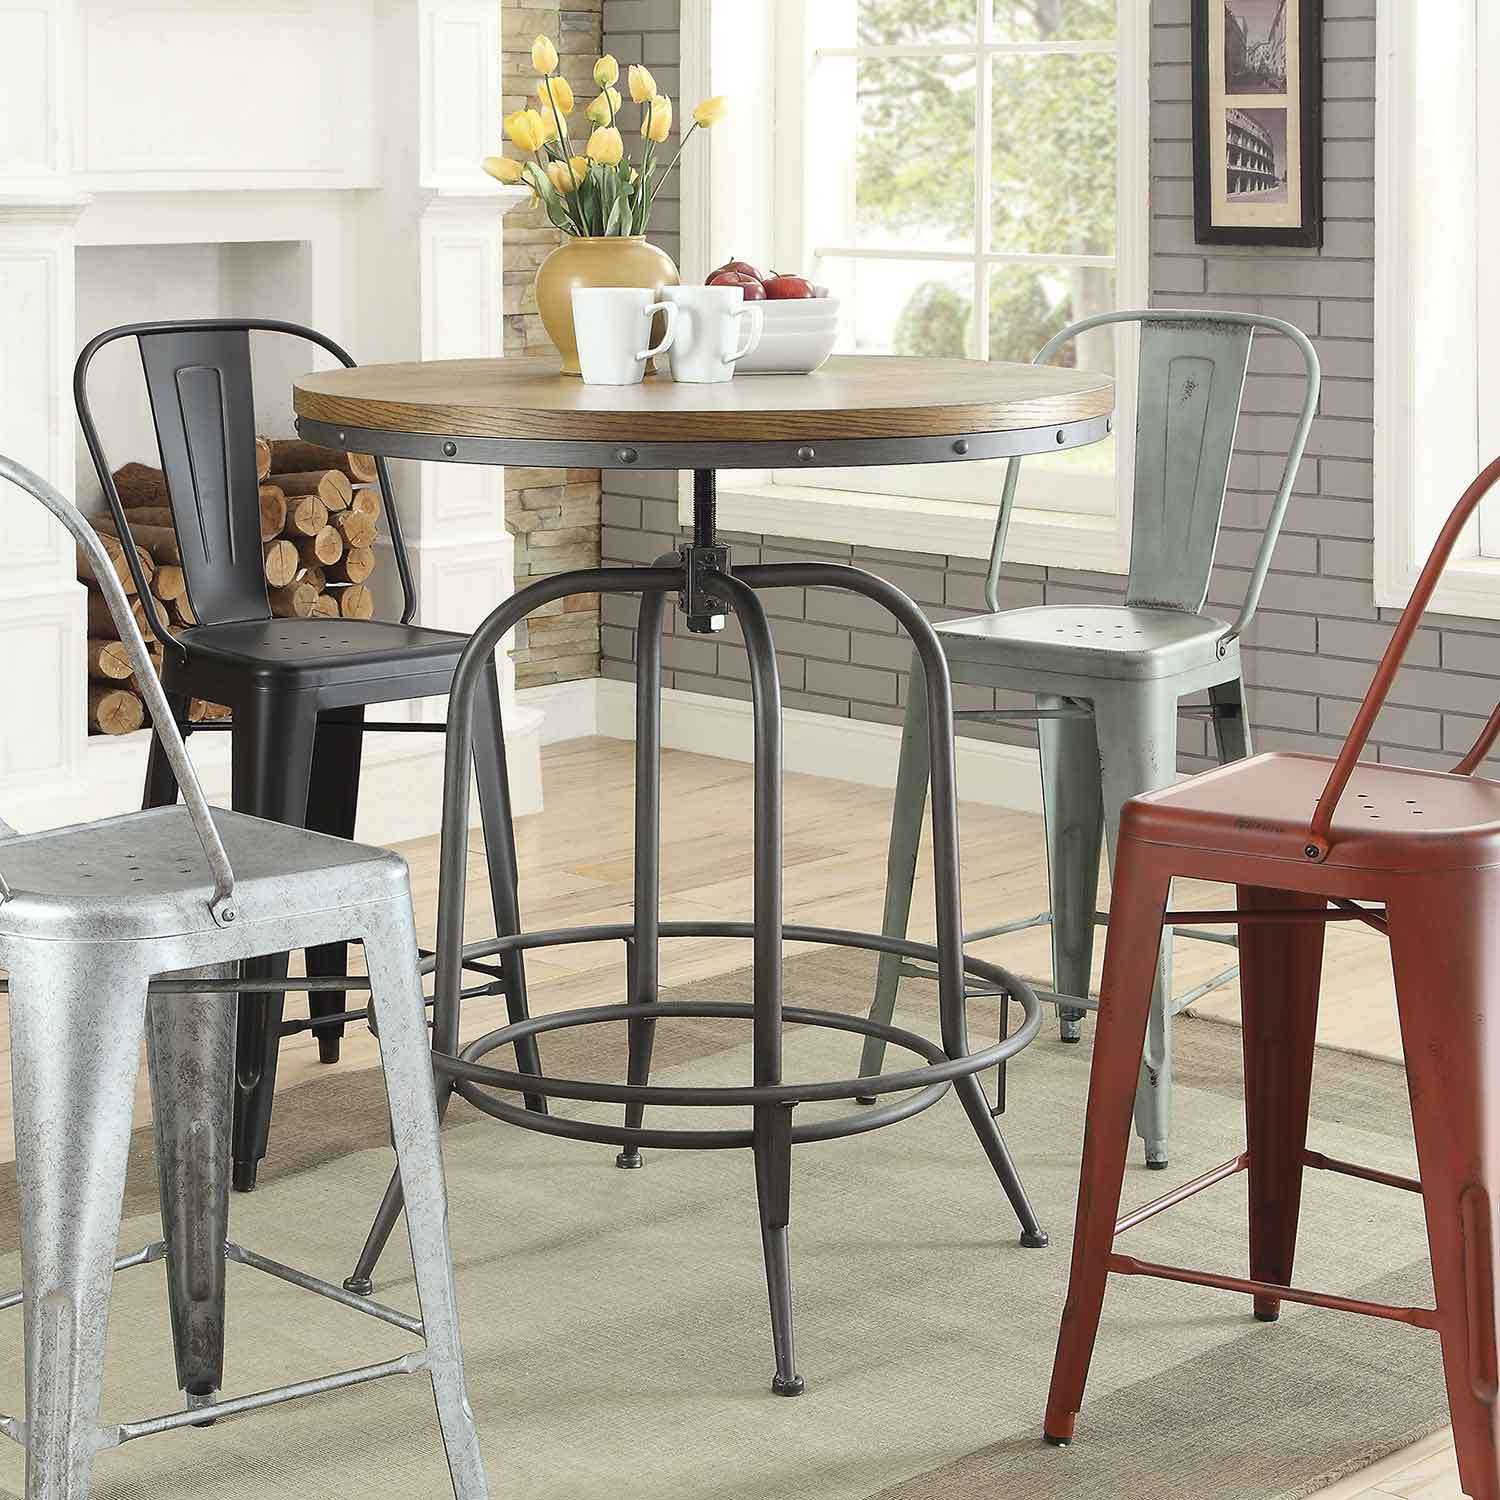 Coaster Transitional Adjustable Bar Table - Brown/Antique Black